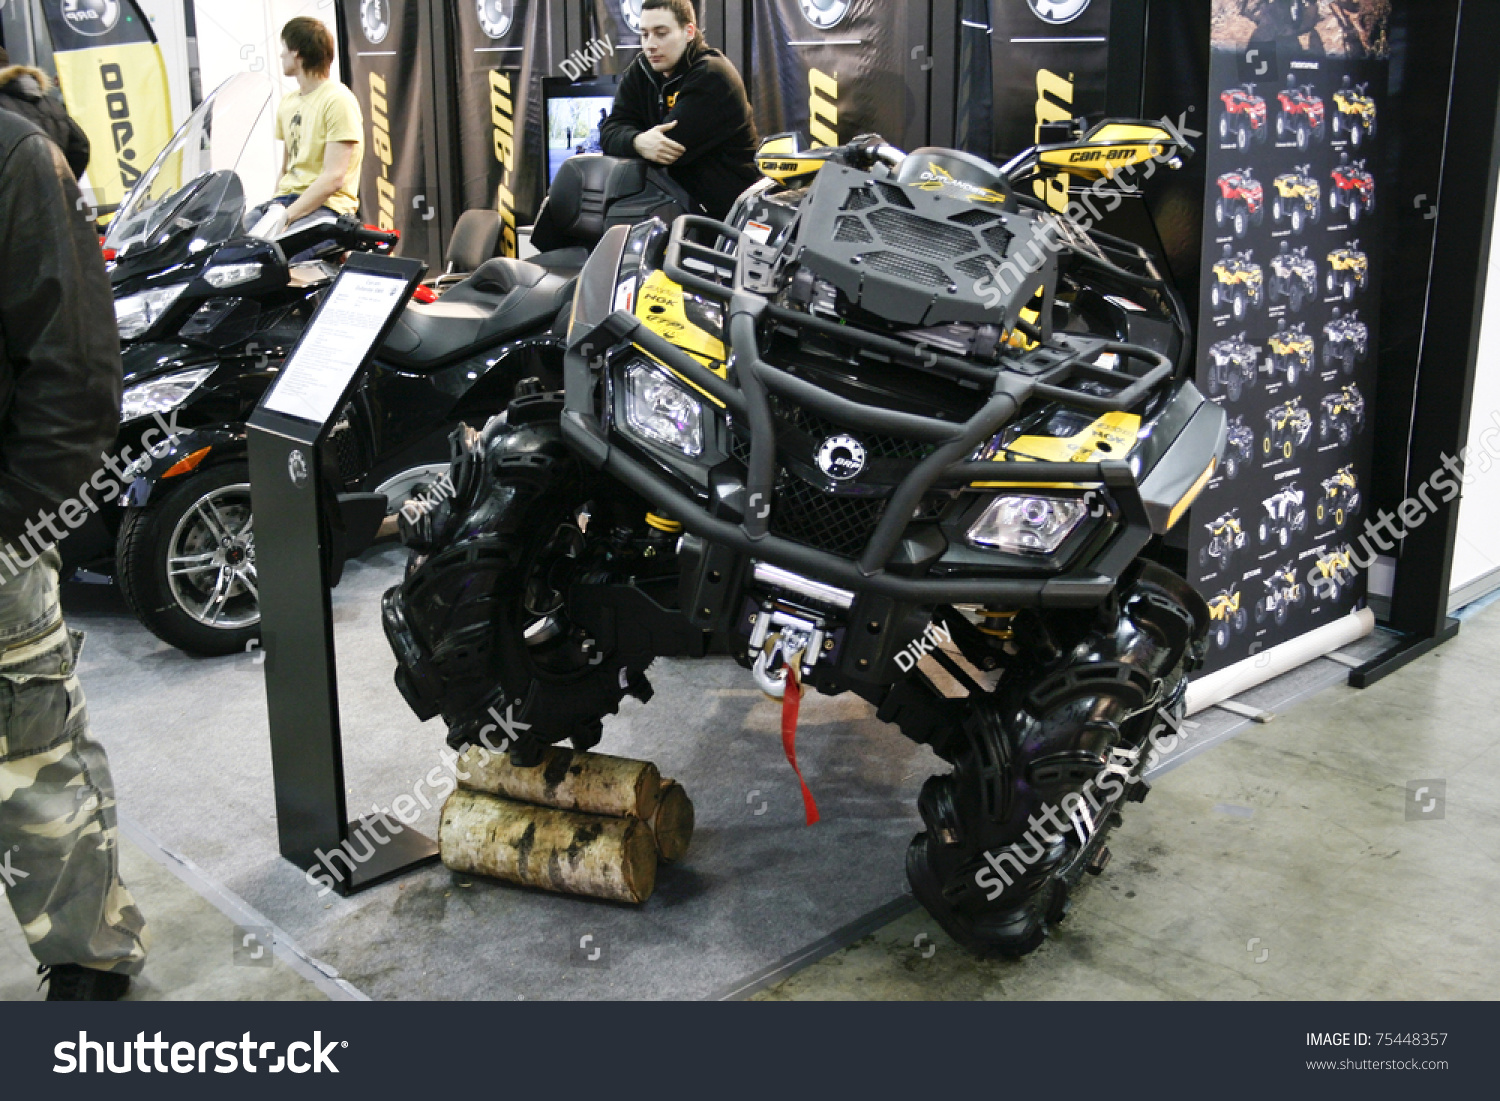 Moscow April 1 Quad Bike Brp Stock Photo 75448357 Shutterstock